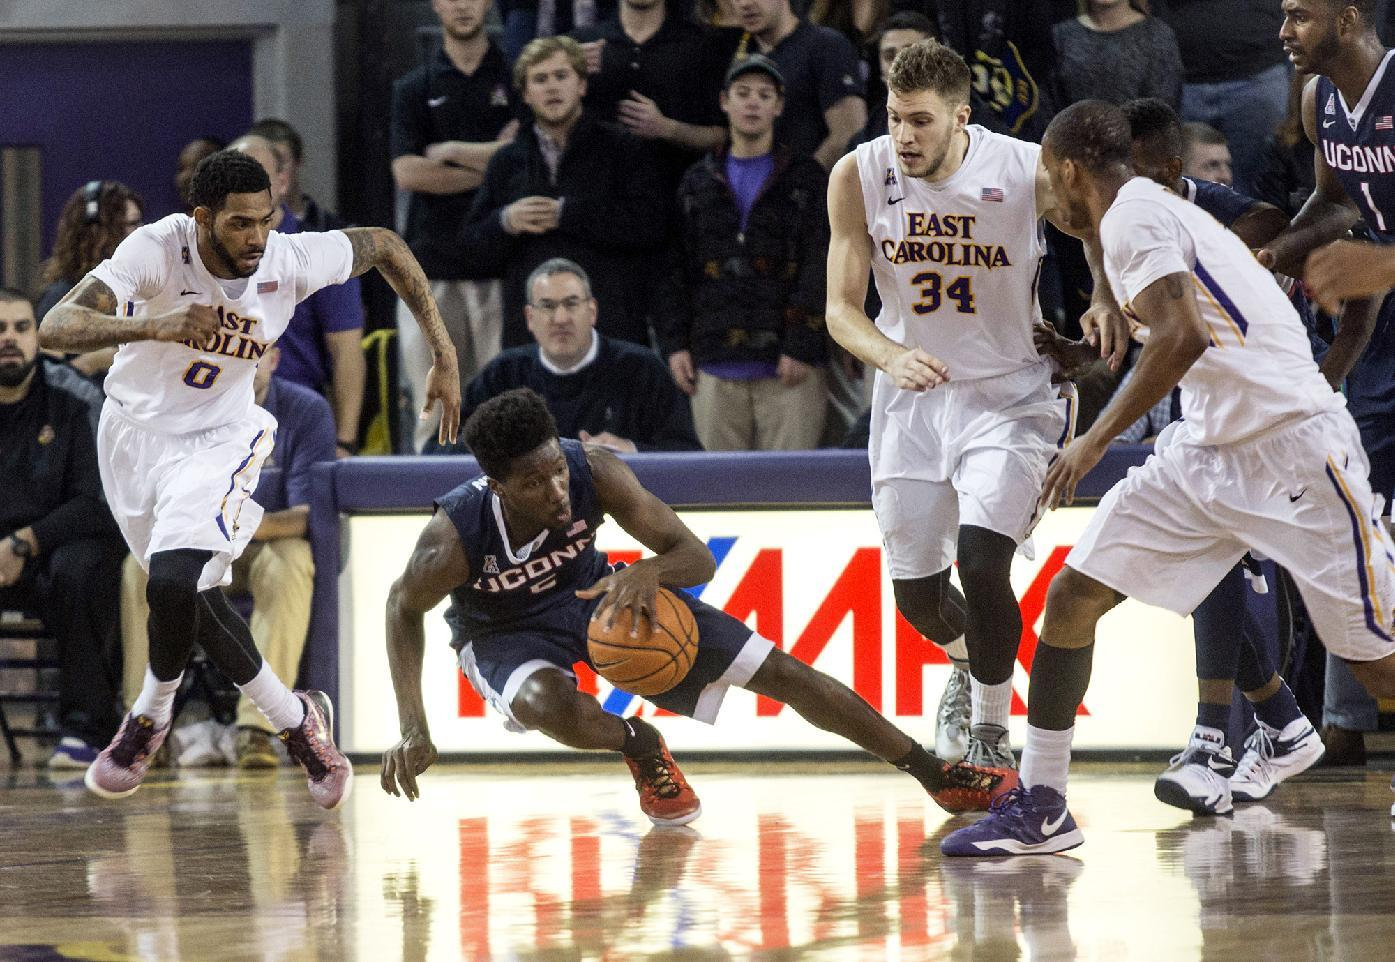 UConn gets rare league road win, 60-49 over East Carolina